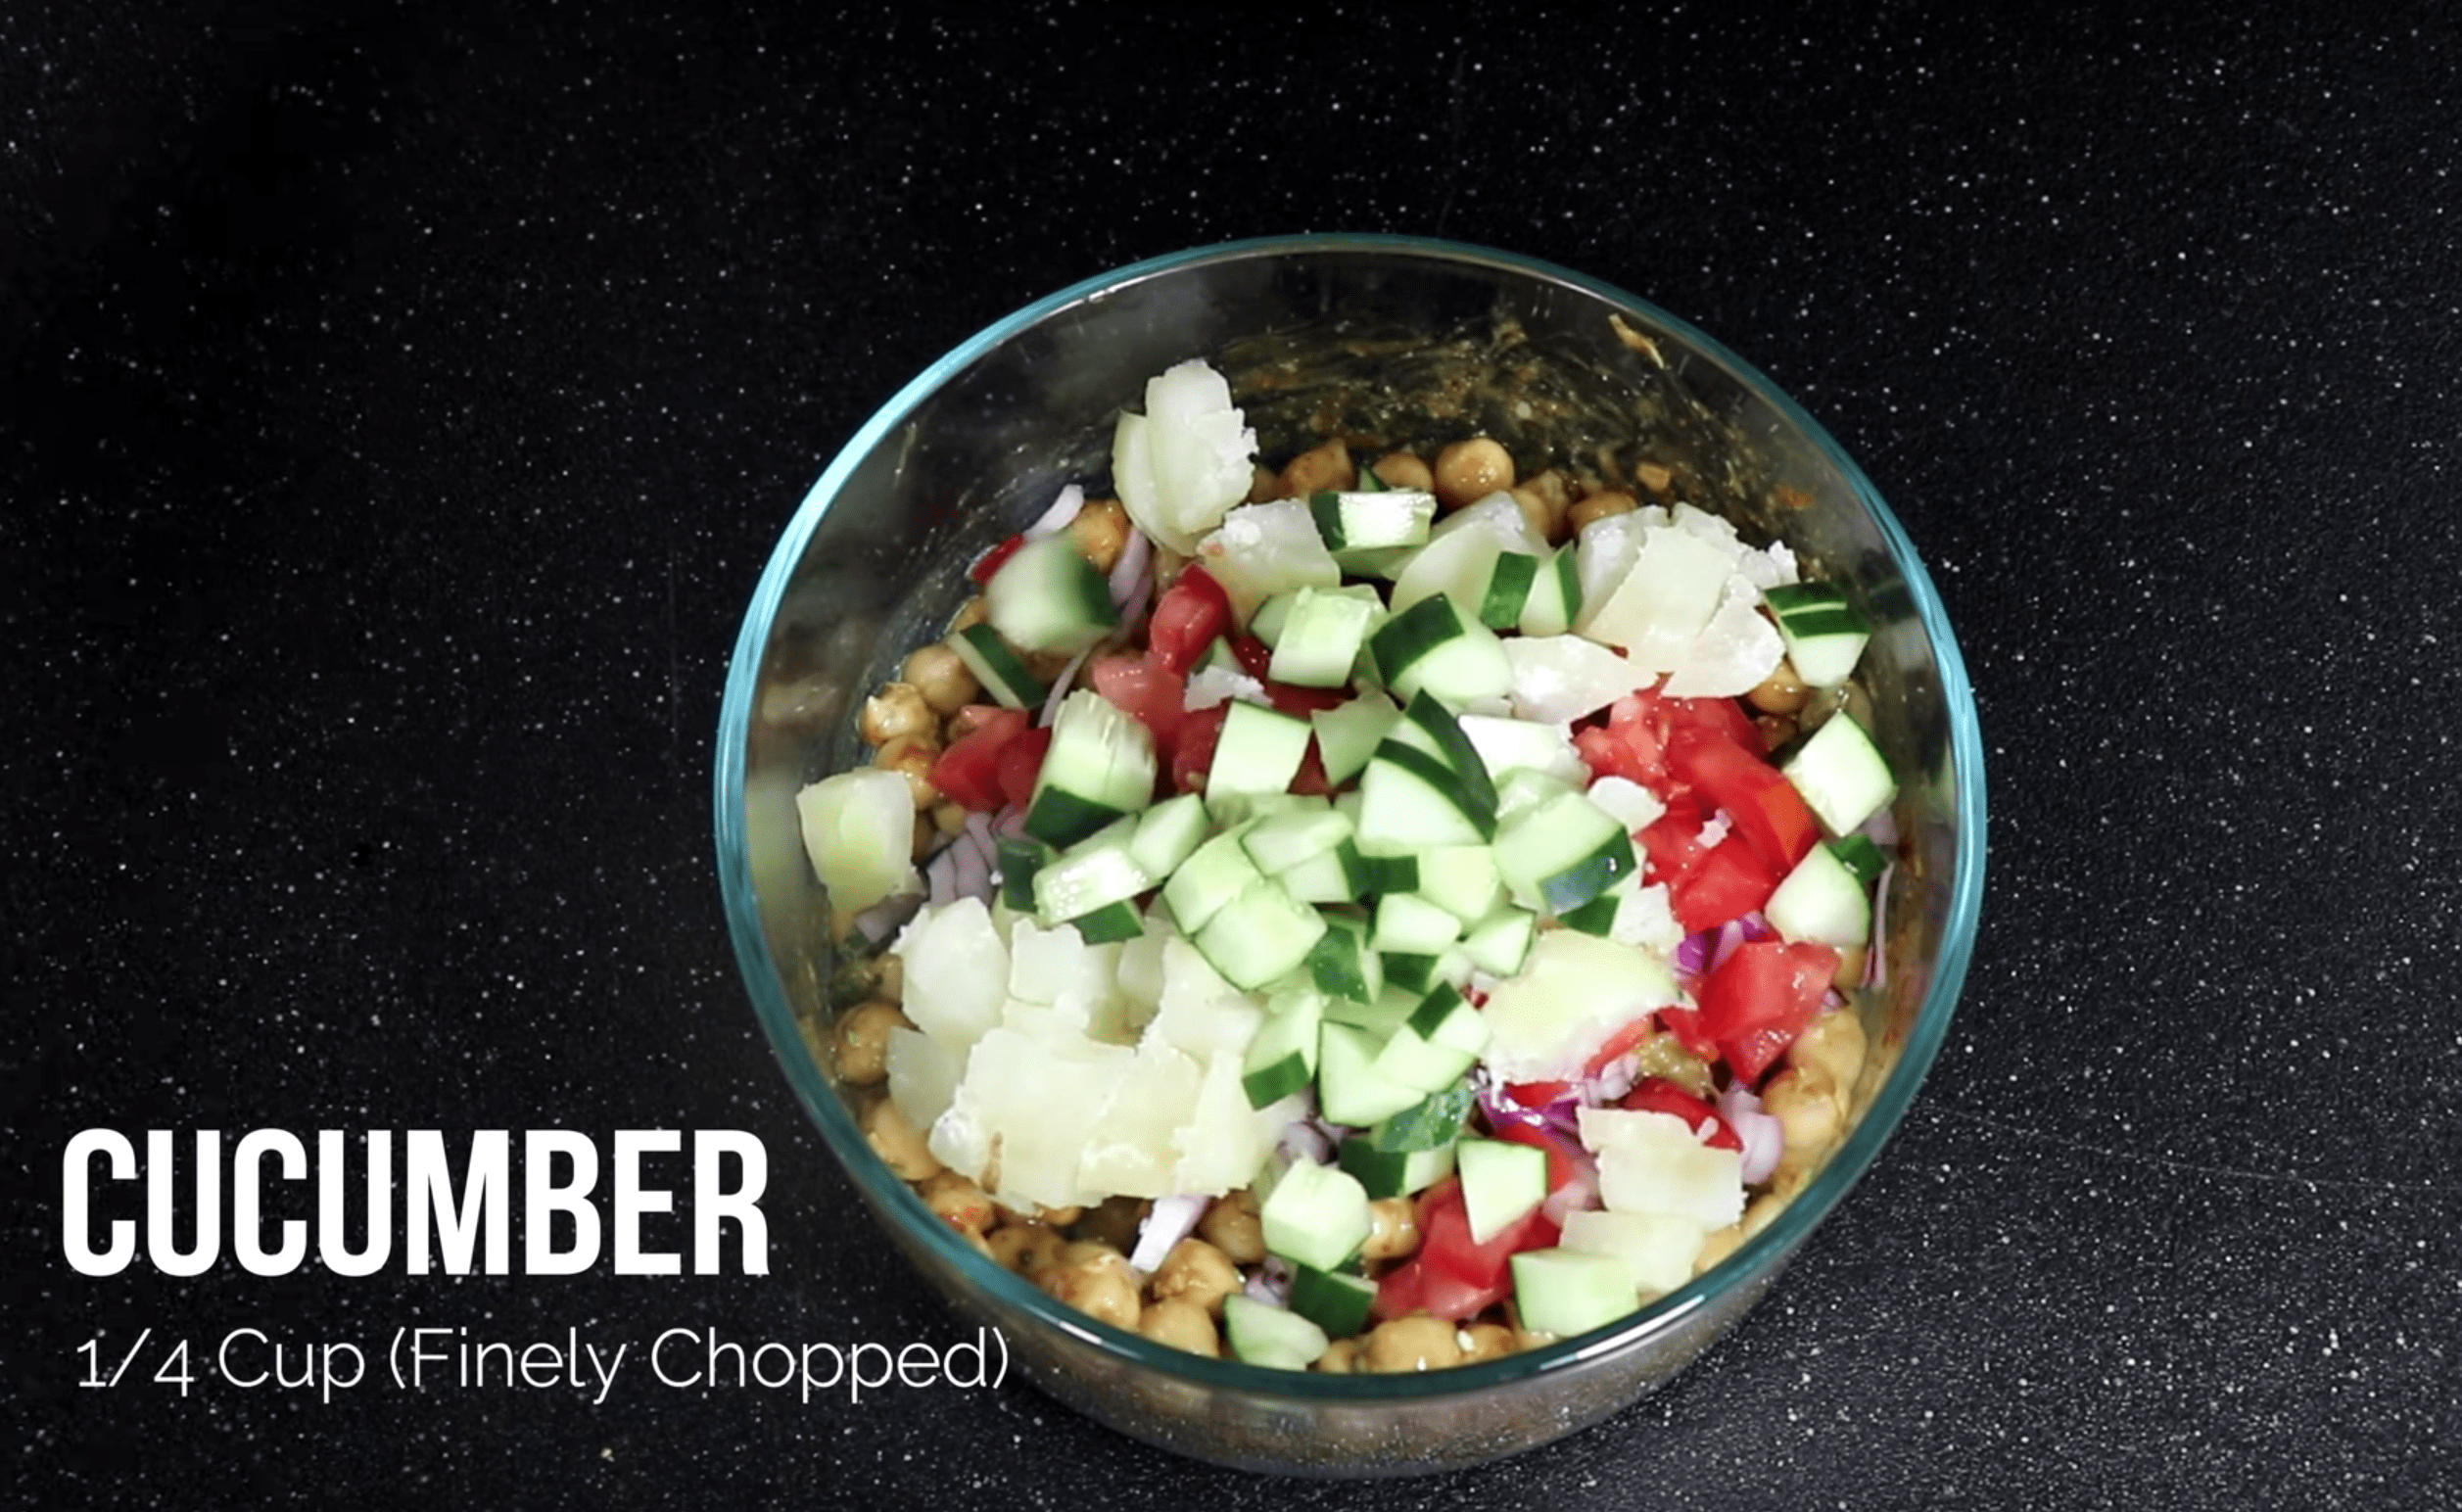 Add 1/4th Cup of Finely Chopped Cucumber for Chana Chaat Chickpea Recipe